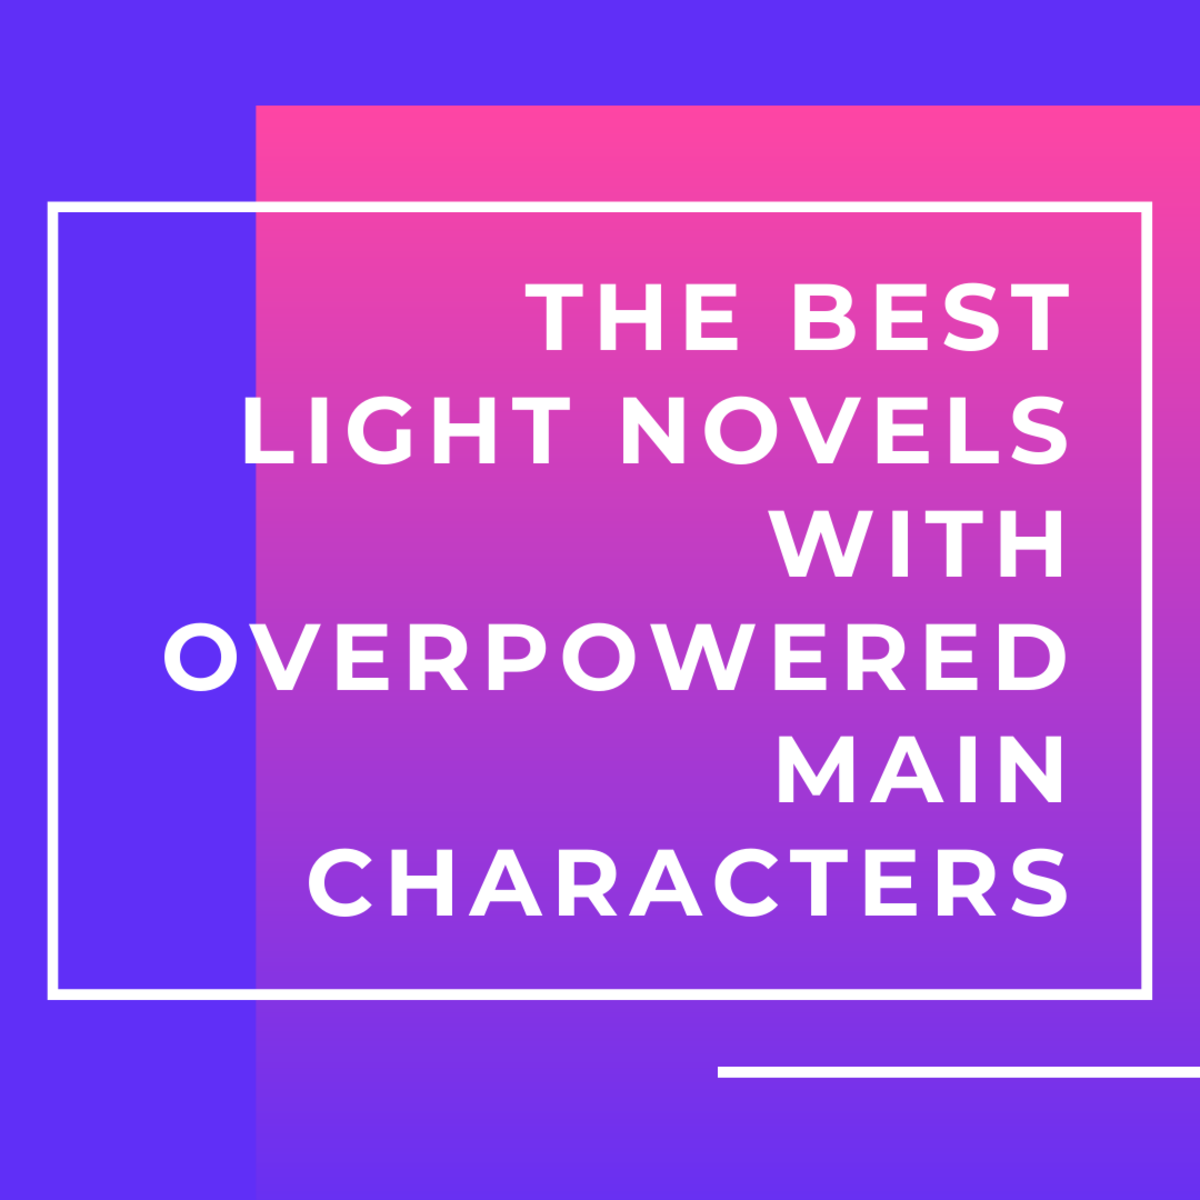 This article includes the top 15 overpowered main characters found in light novels.